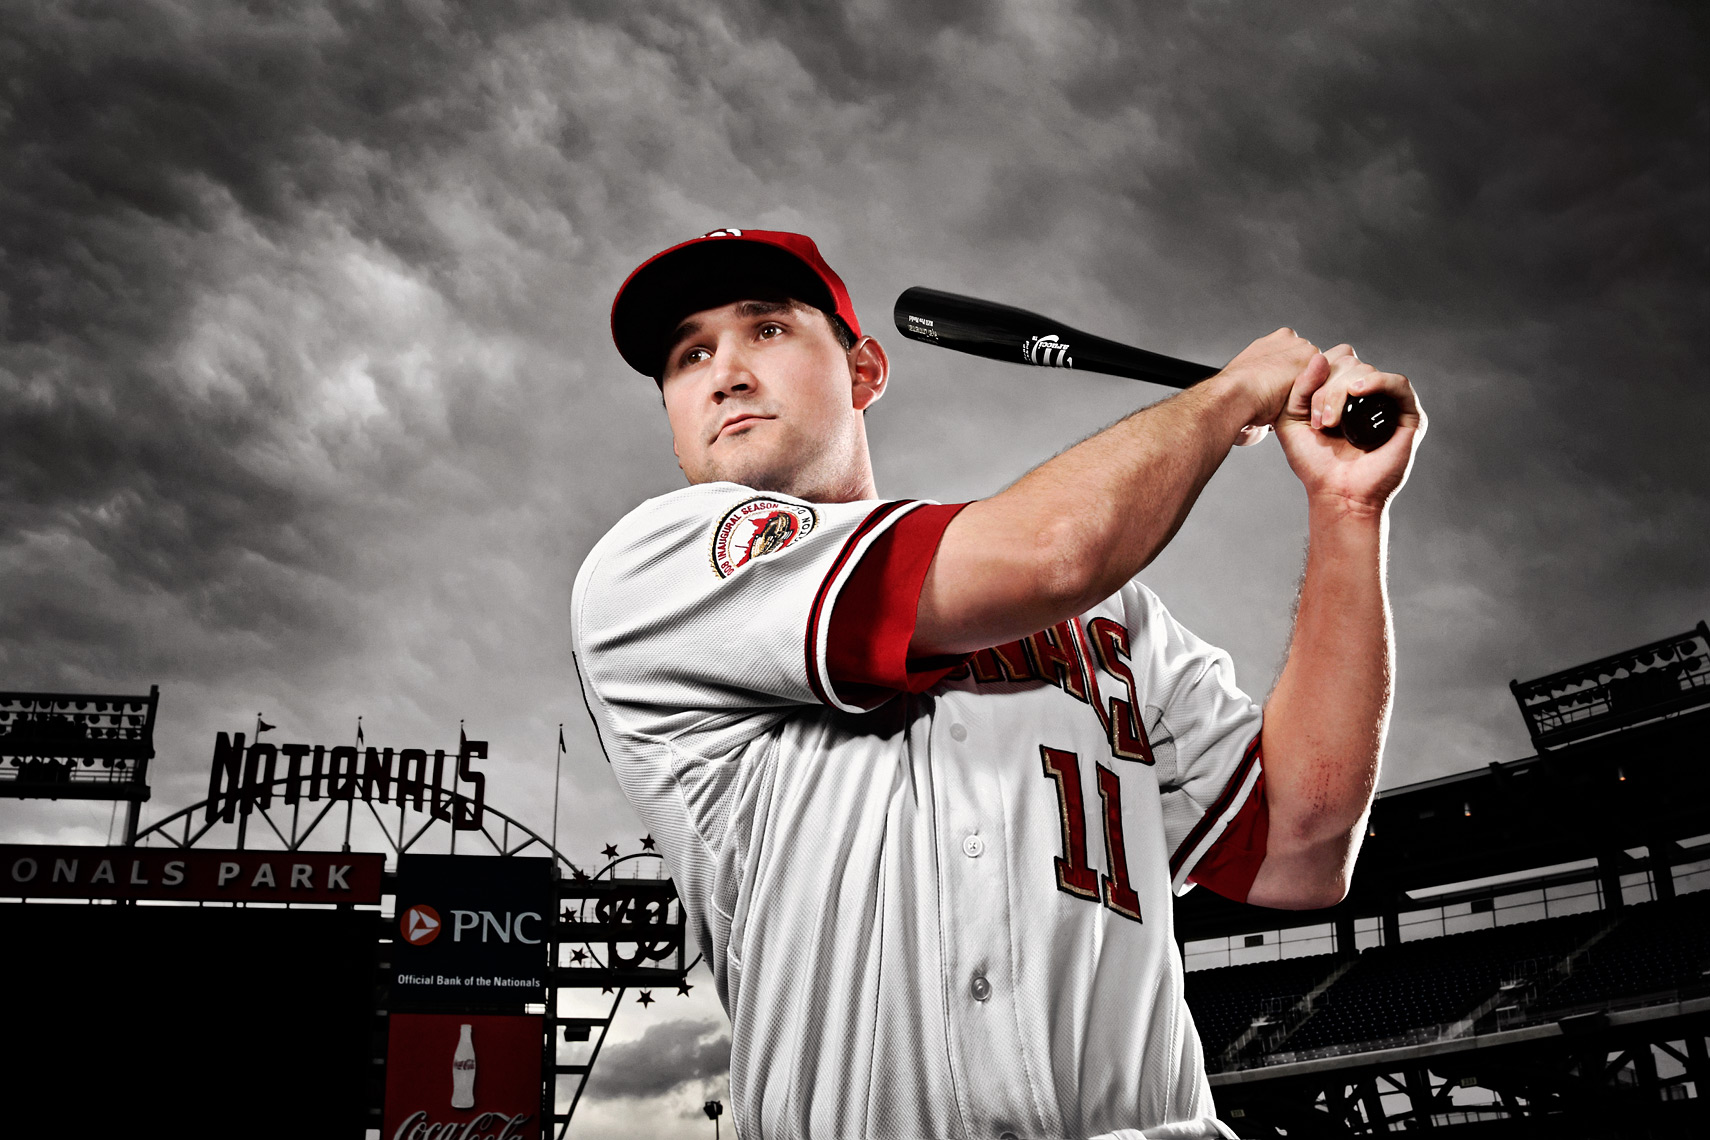 Ryan Zimmerman | Jonathan Timmes Photography